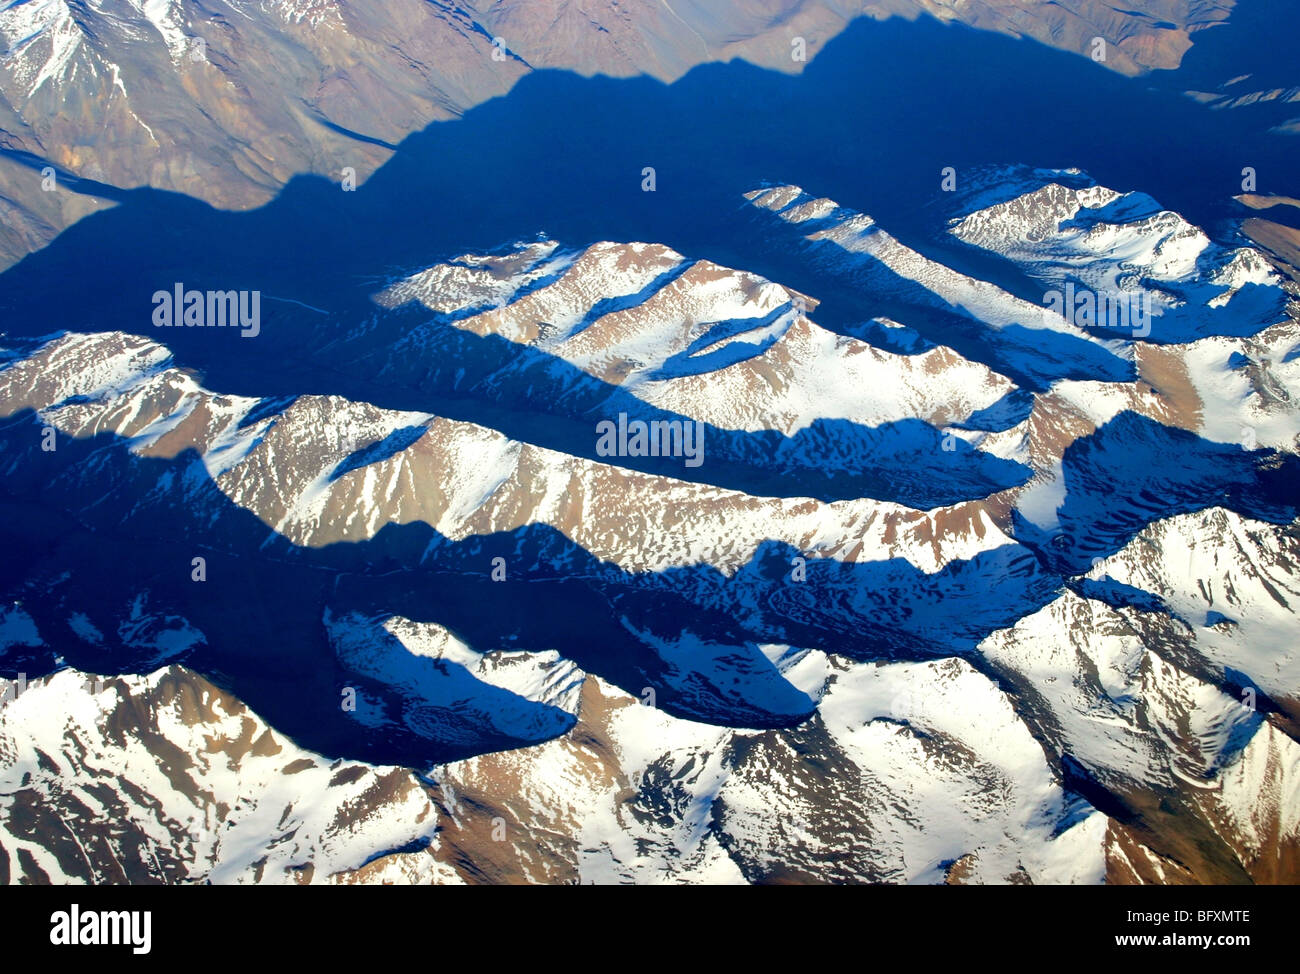 Aerial View of the Andes, Chile - Stock Image